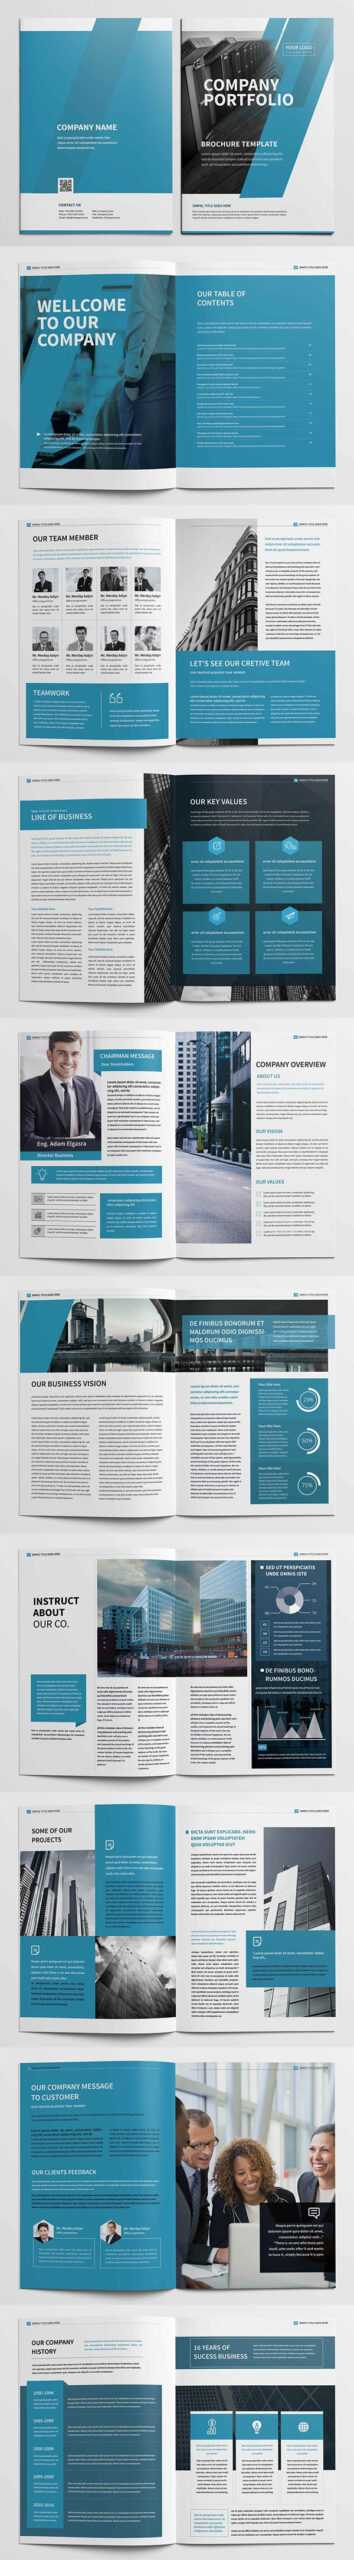 Brochure Templates And Catalog Design | Design | Graphic Intended For Engineering Brochure Templates